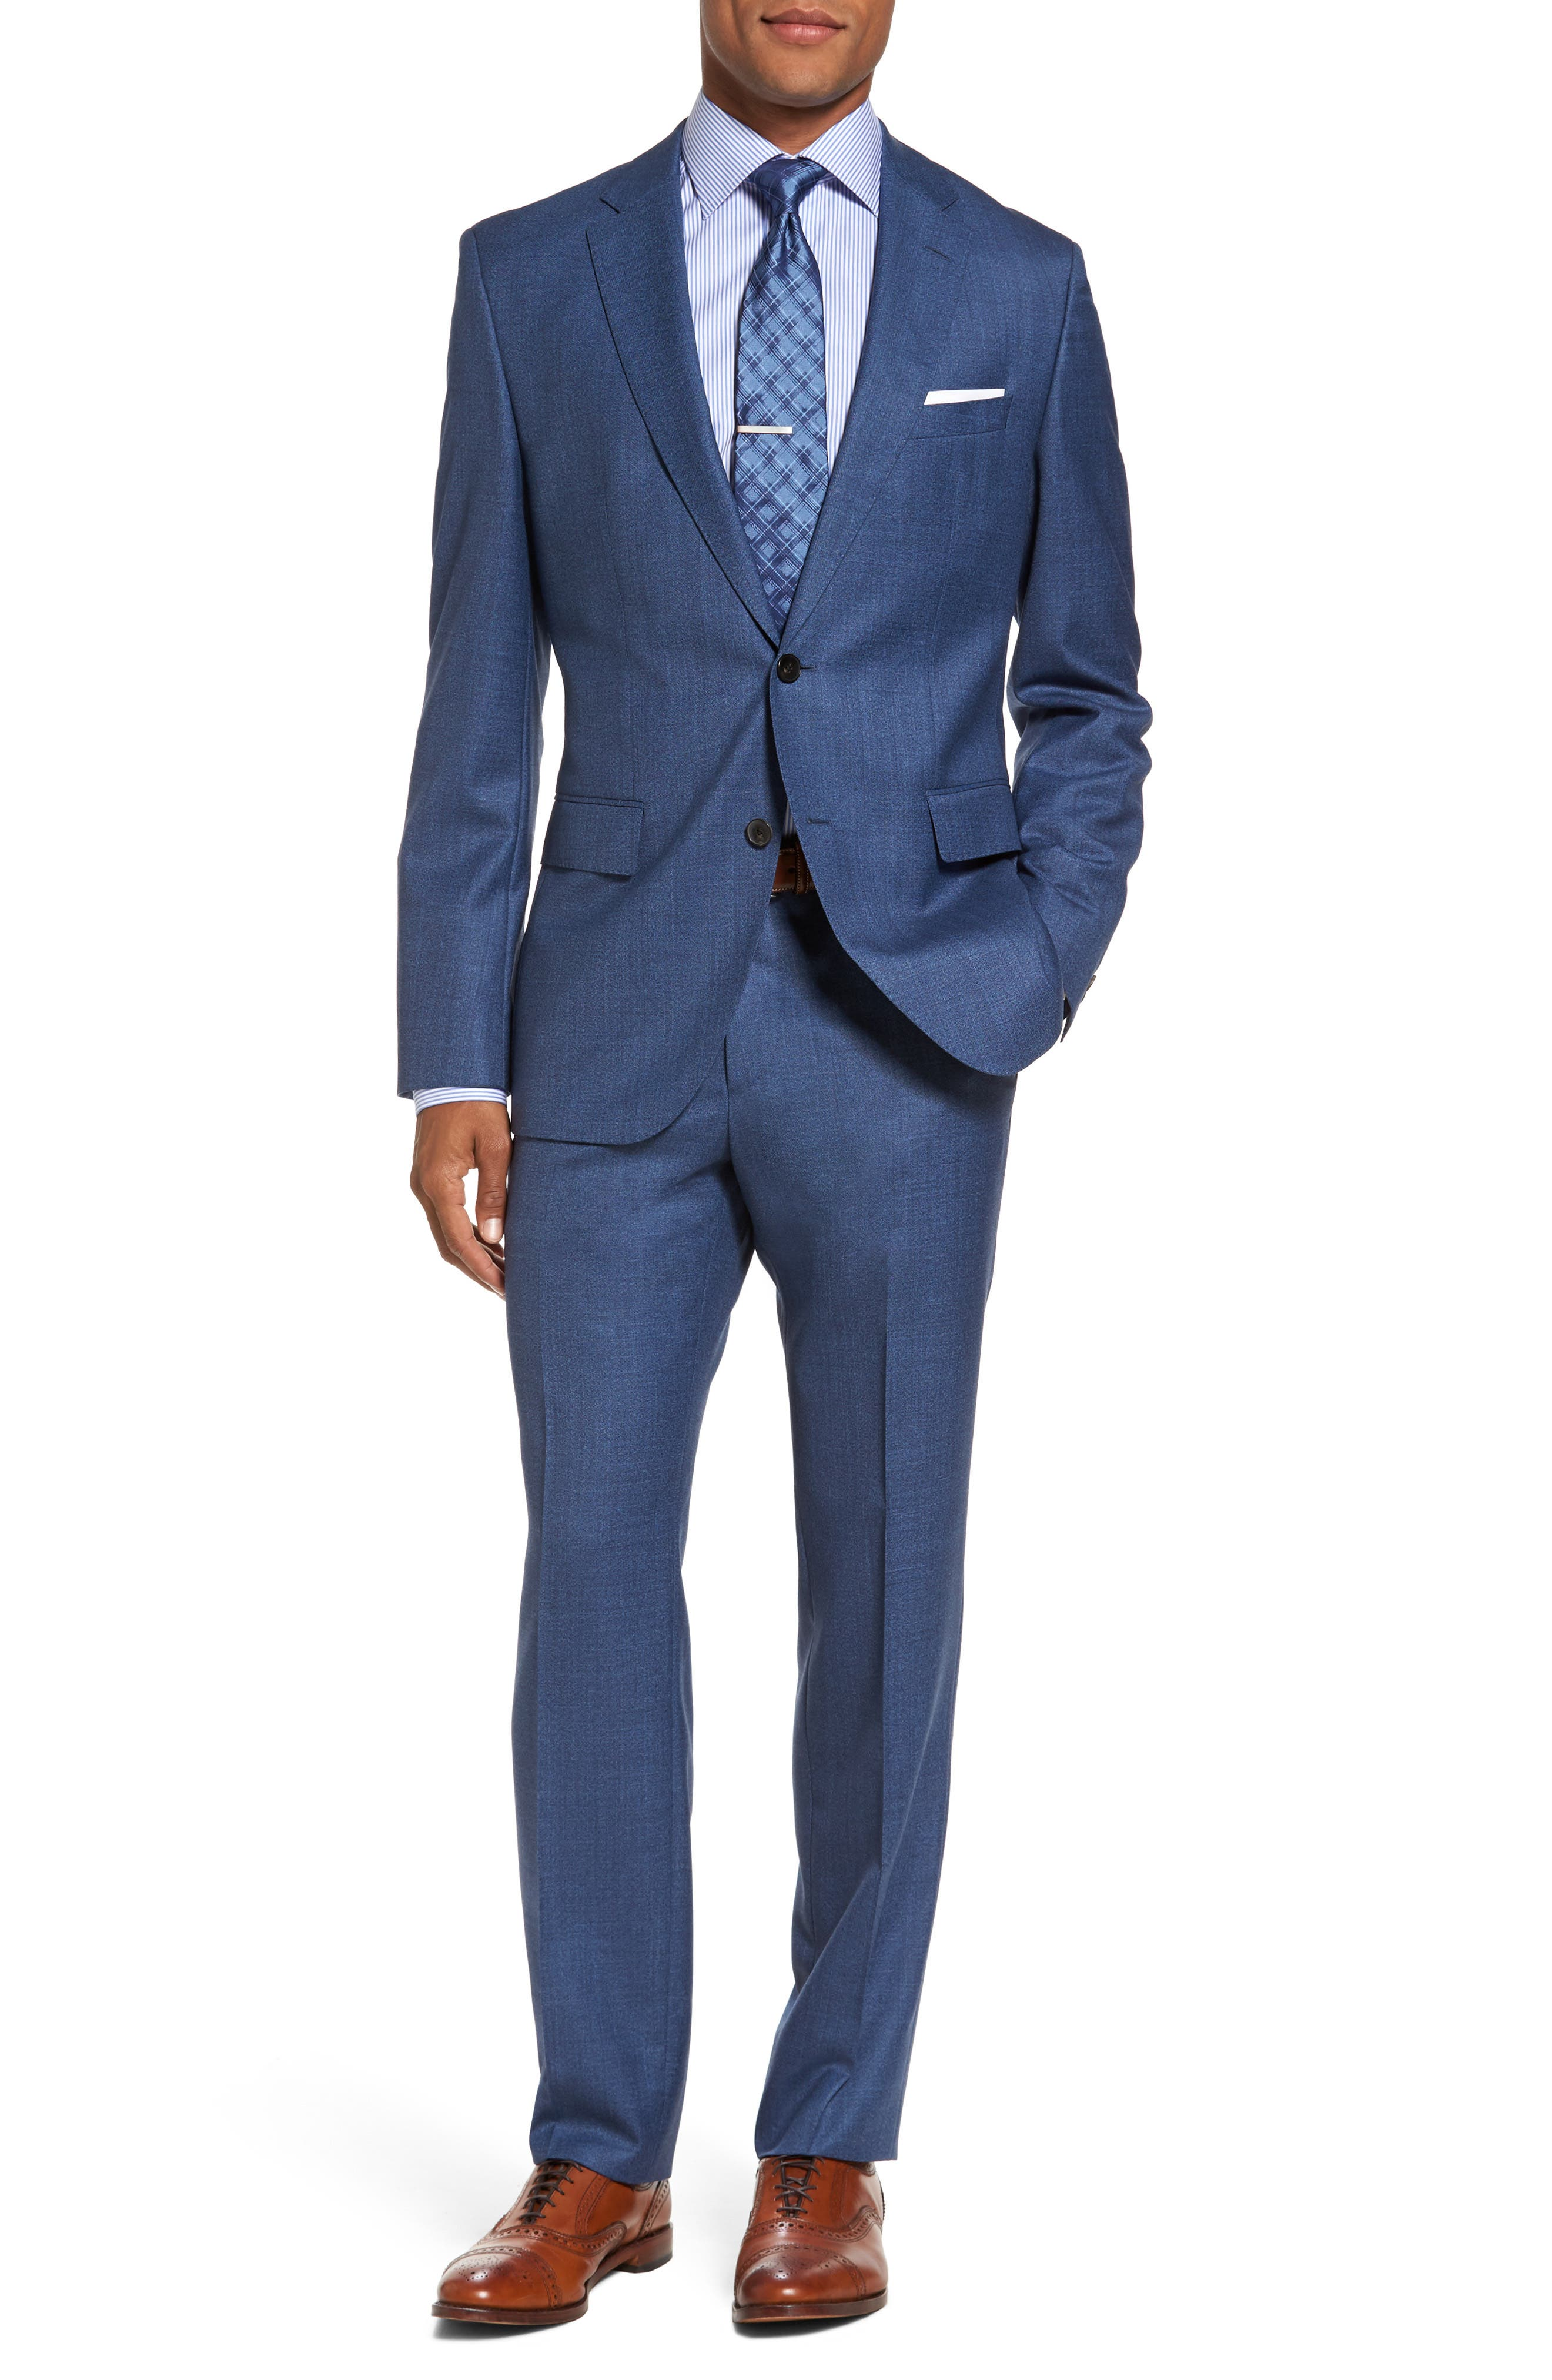 Alternate Image 1 Selected - BOSS Johnstons/Lenon Classic Fit Solid Wool Suit